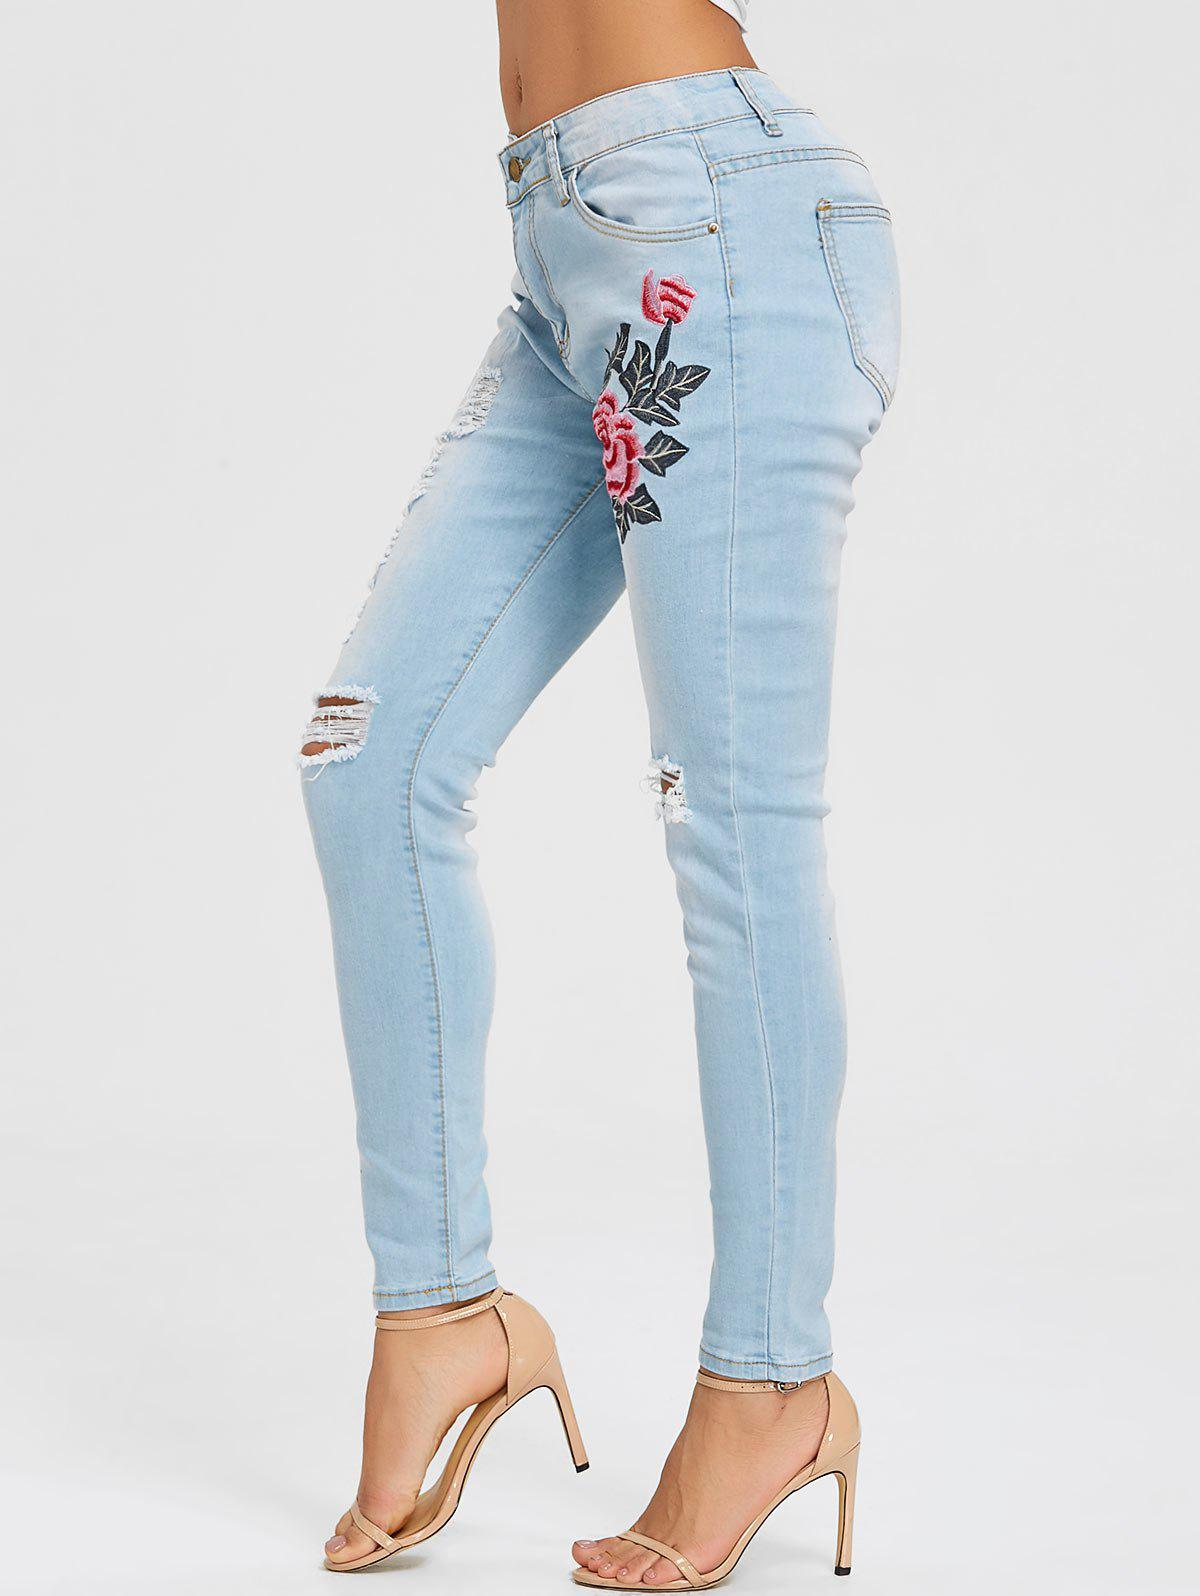 Floral Embroidery Distressed Skinny Jeans - LIGHT BLUE XL